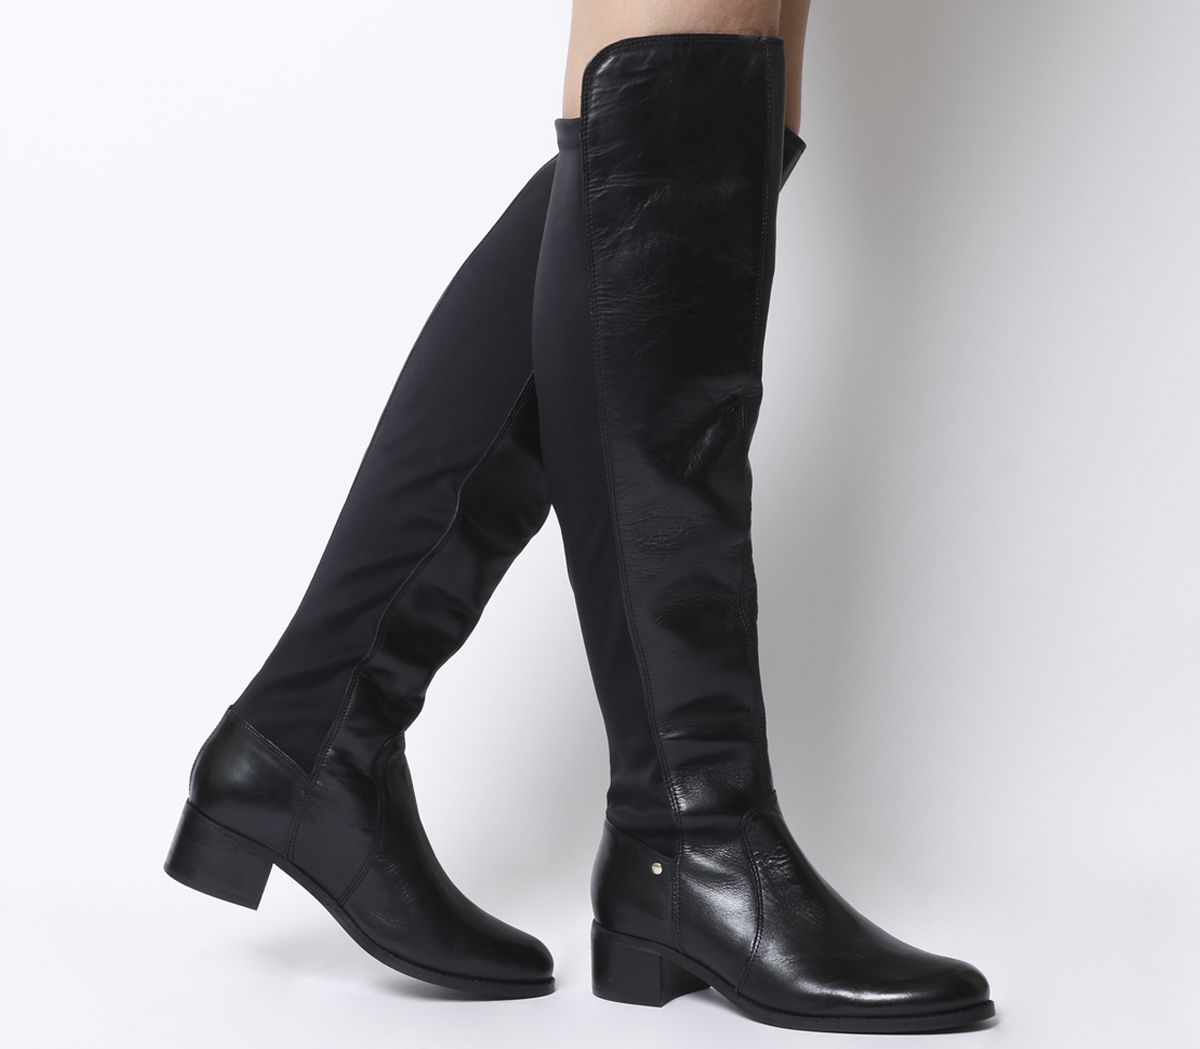 86ac186ad10 Office Kite Stretch Back Over The Knee Boots Black Leather - Knee Boots